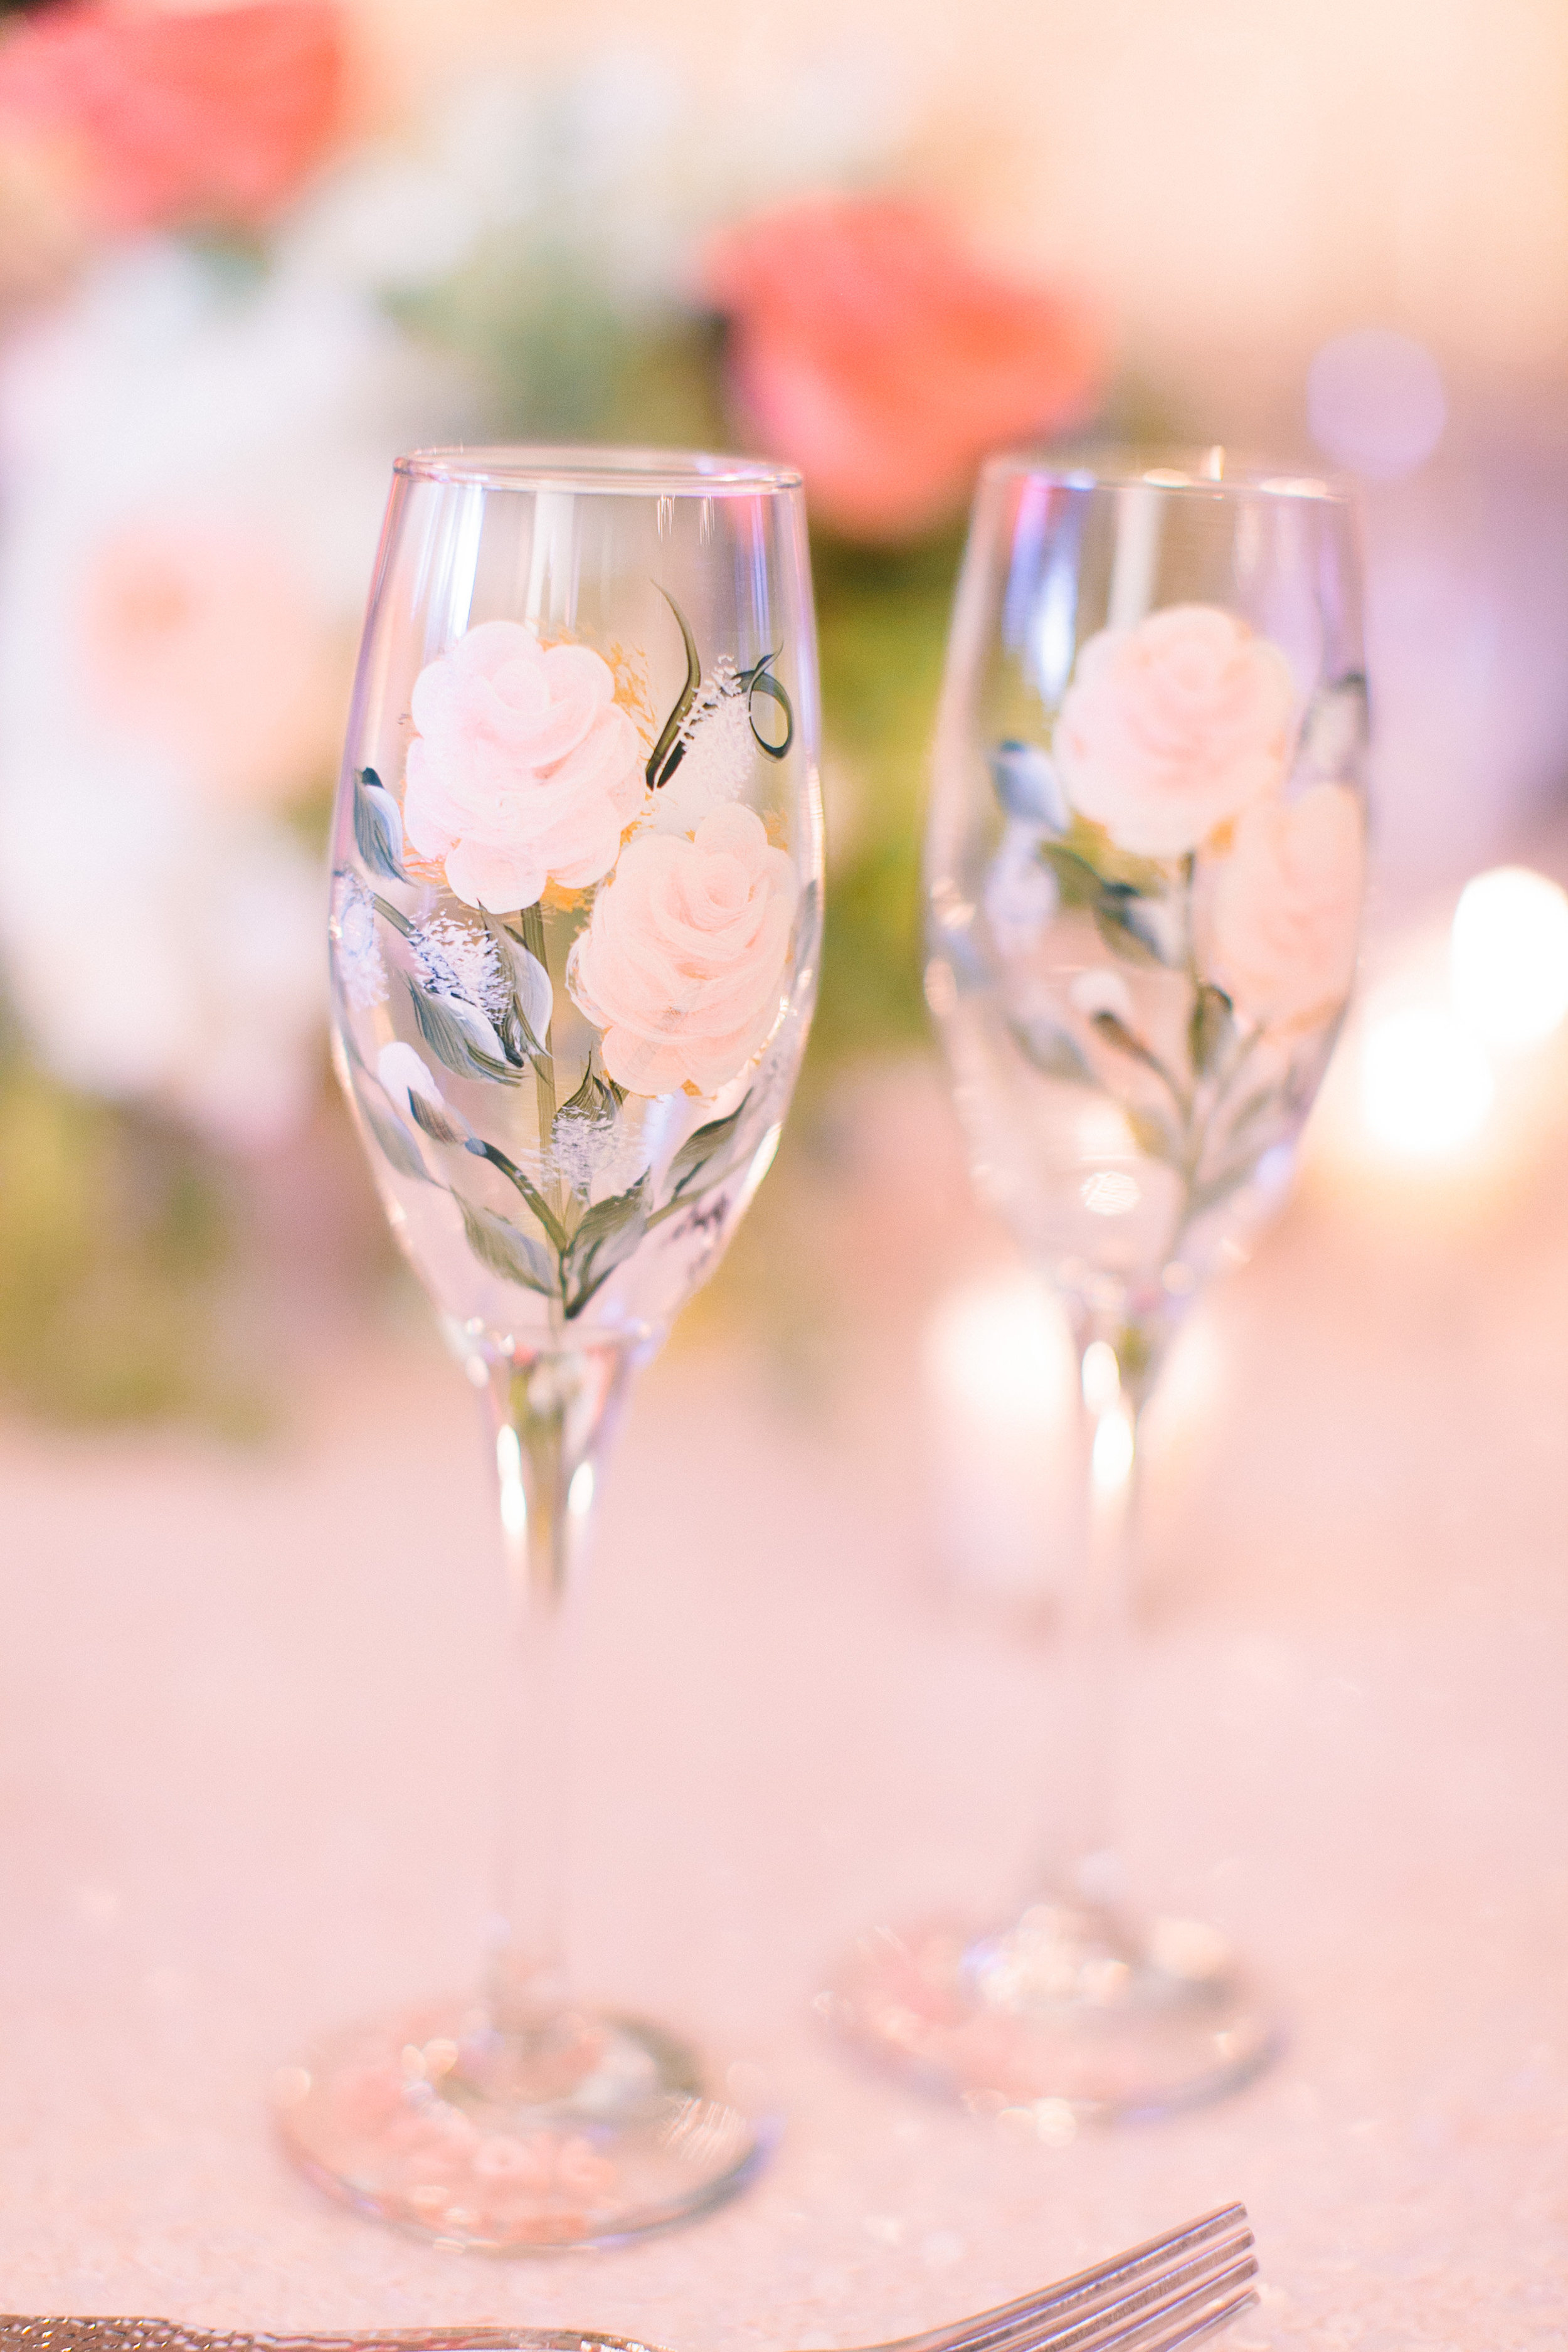 wedding, arizona wedding, wedding dress, bride, wedding planner, phoenix wedding planner, scottsdale wedding planner, champagne flutes, wedding champagne flutes